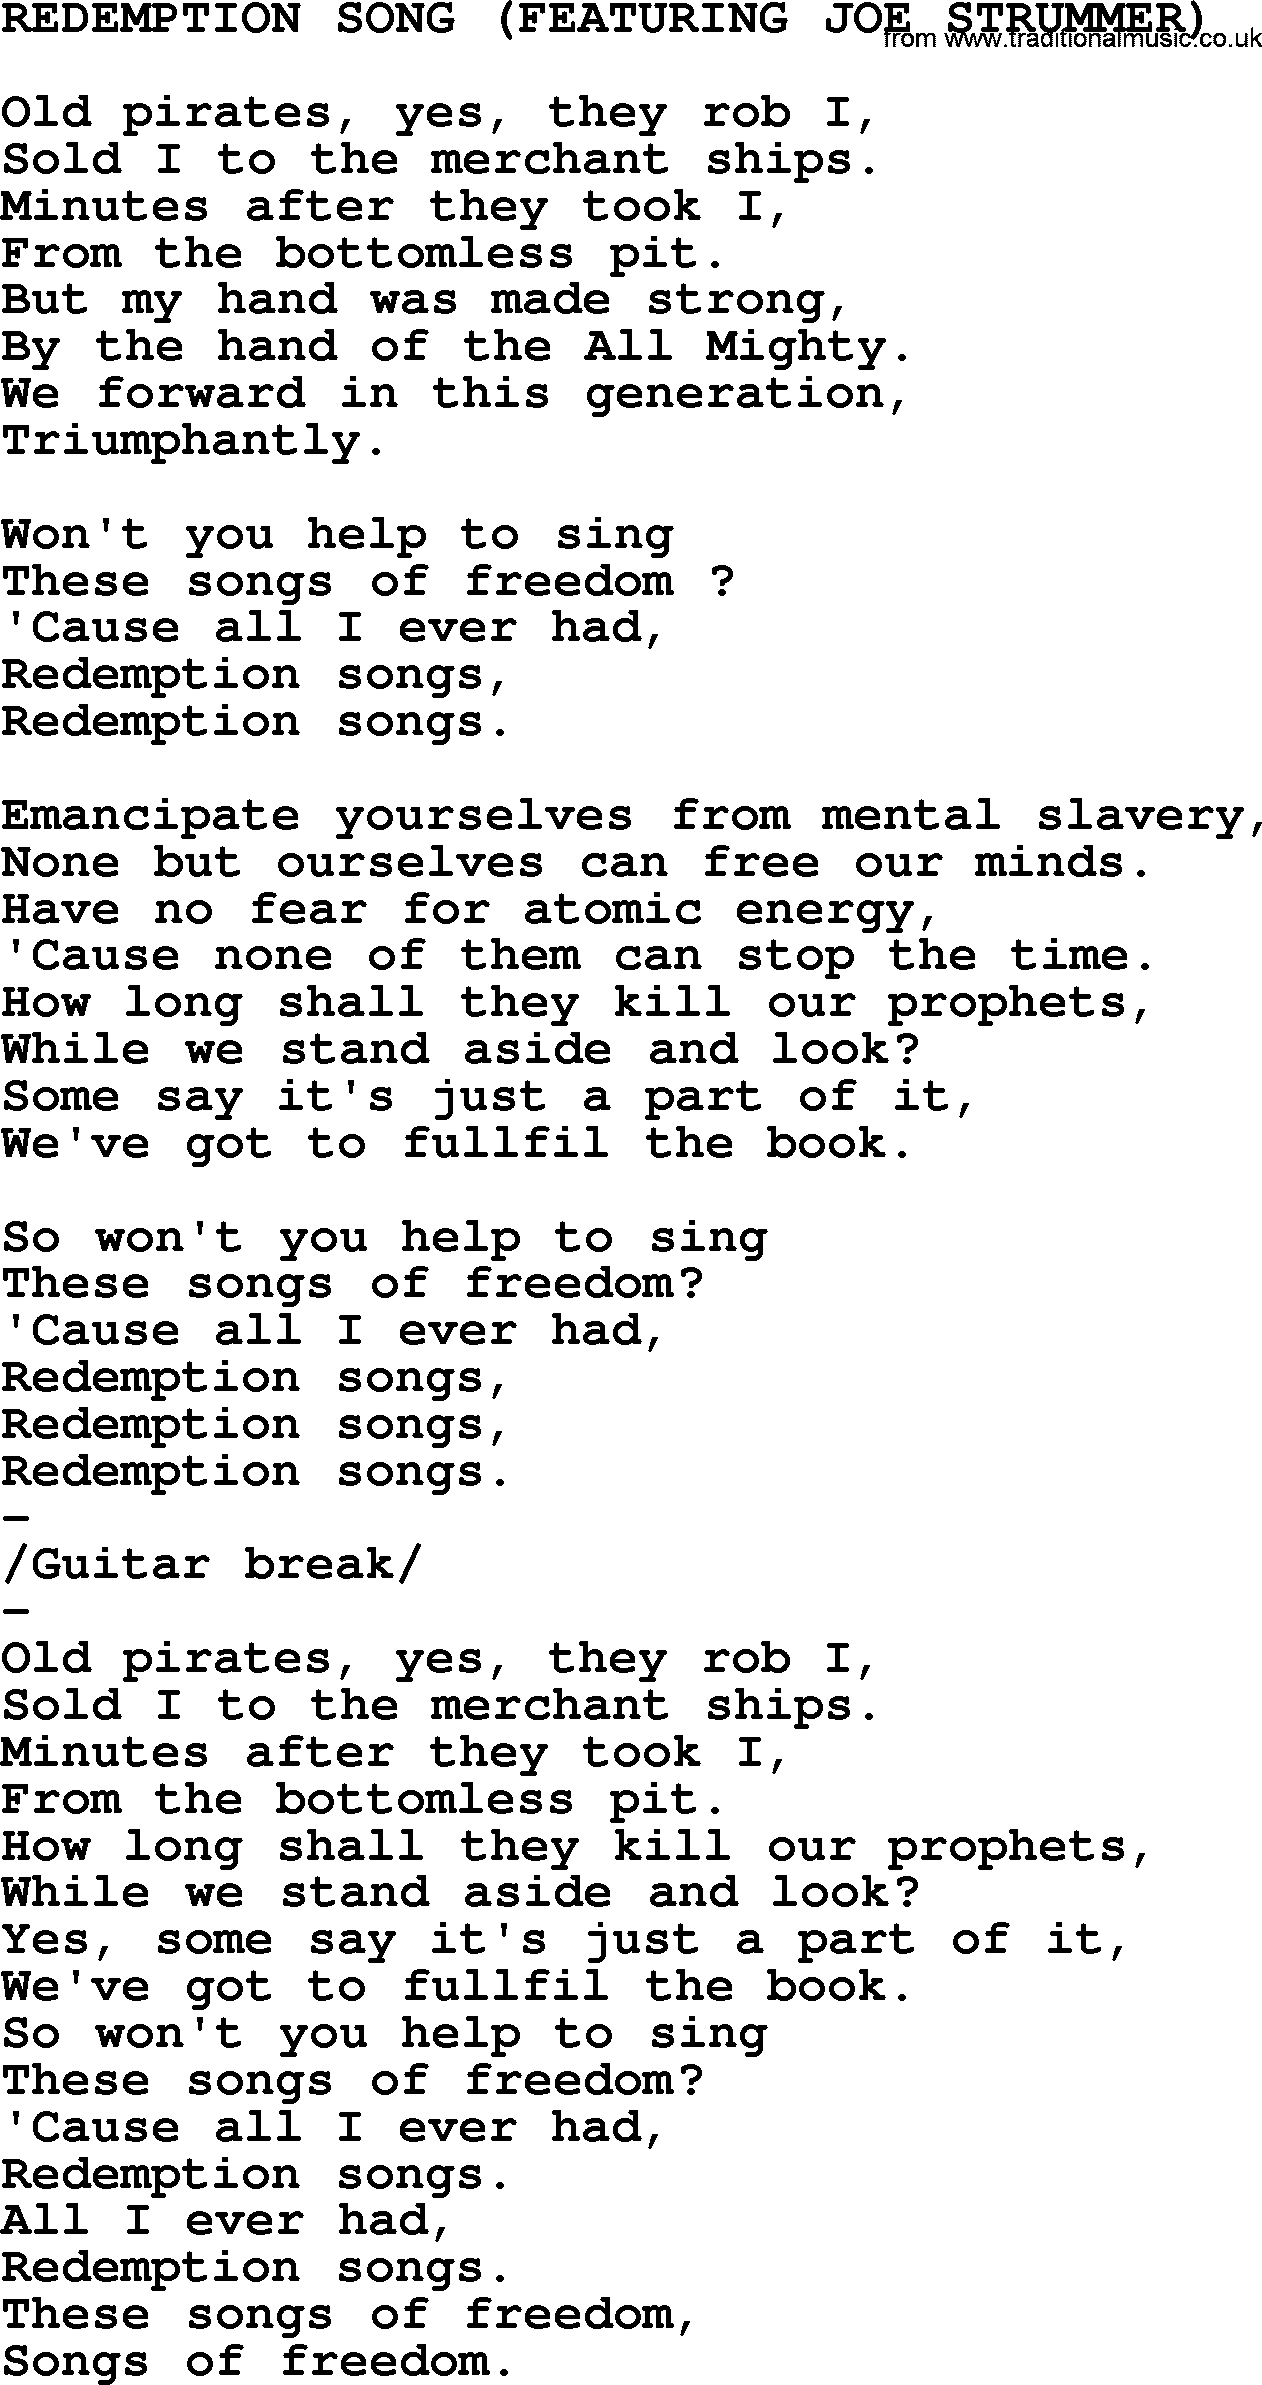 Redemption Song Chords Johnny Cash Song Redemption Song Lyrics